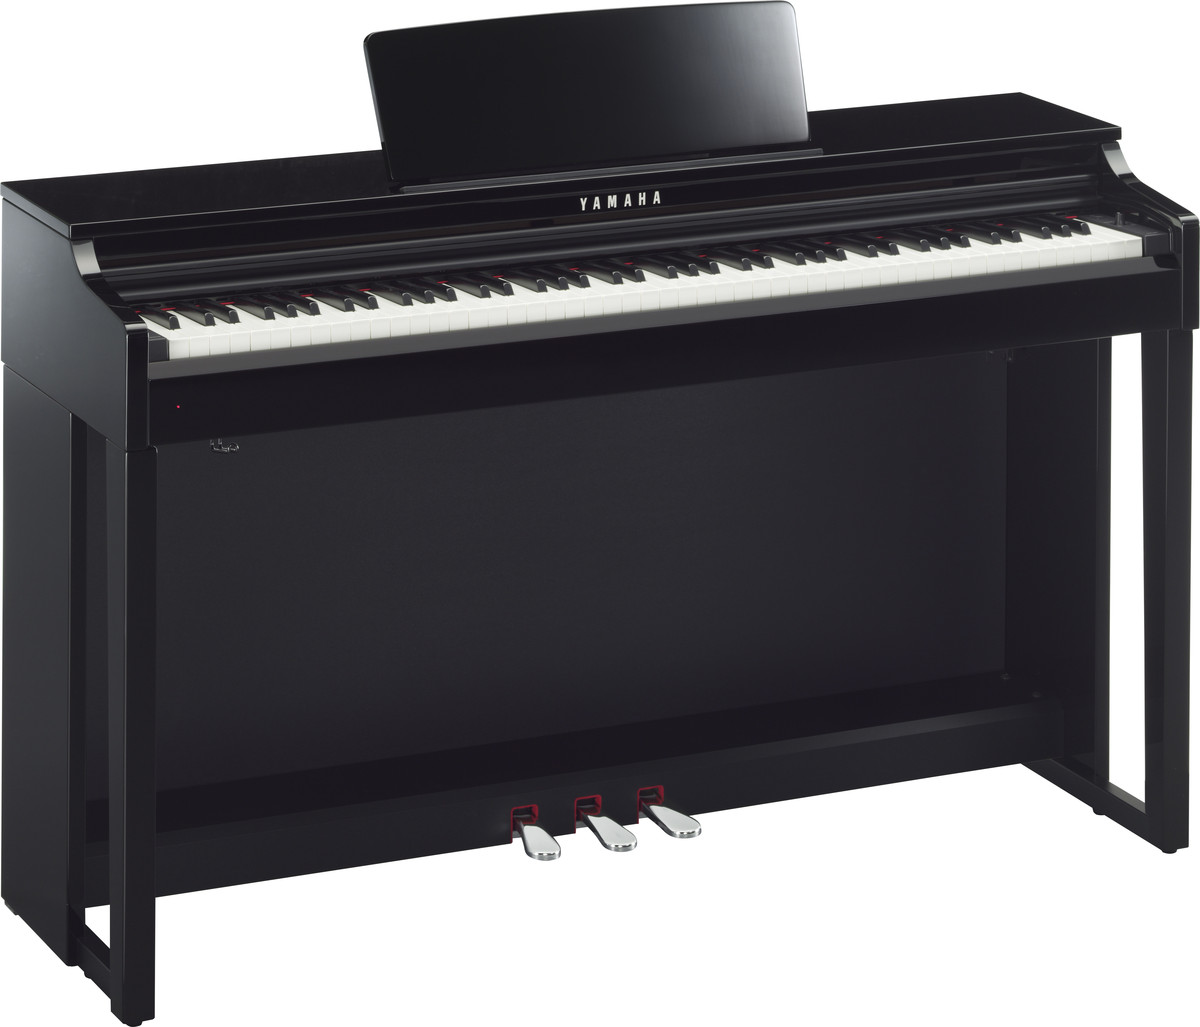 yamaha clavinova clp525 digital piano polished ebony at. Black Bedroom Furniture Sets. Home Design Ideas